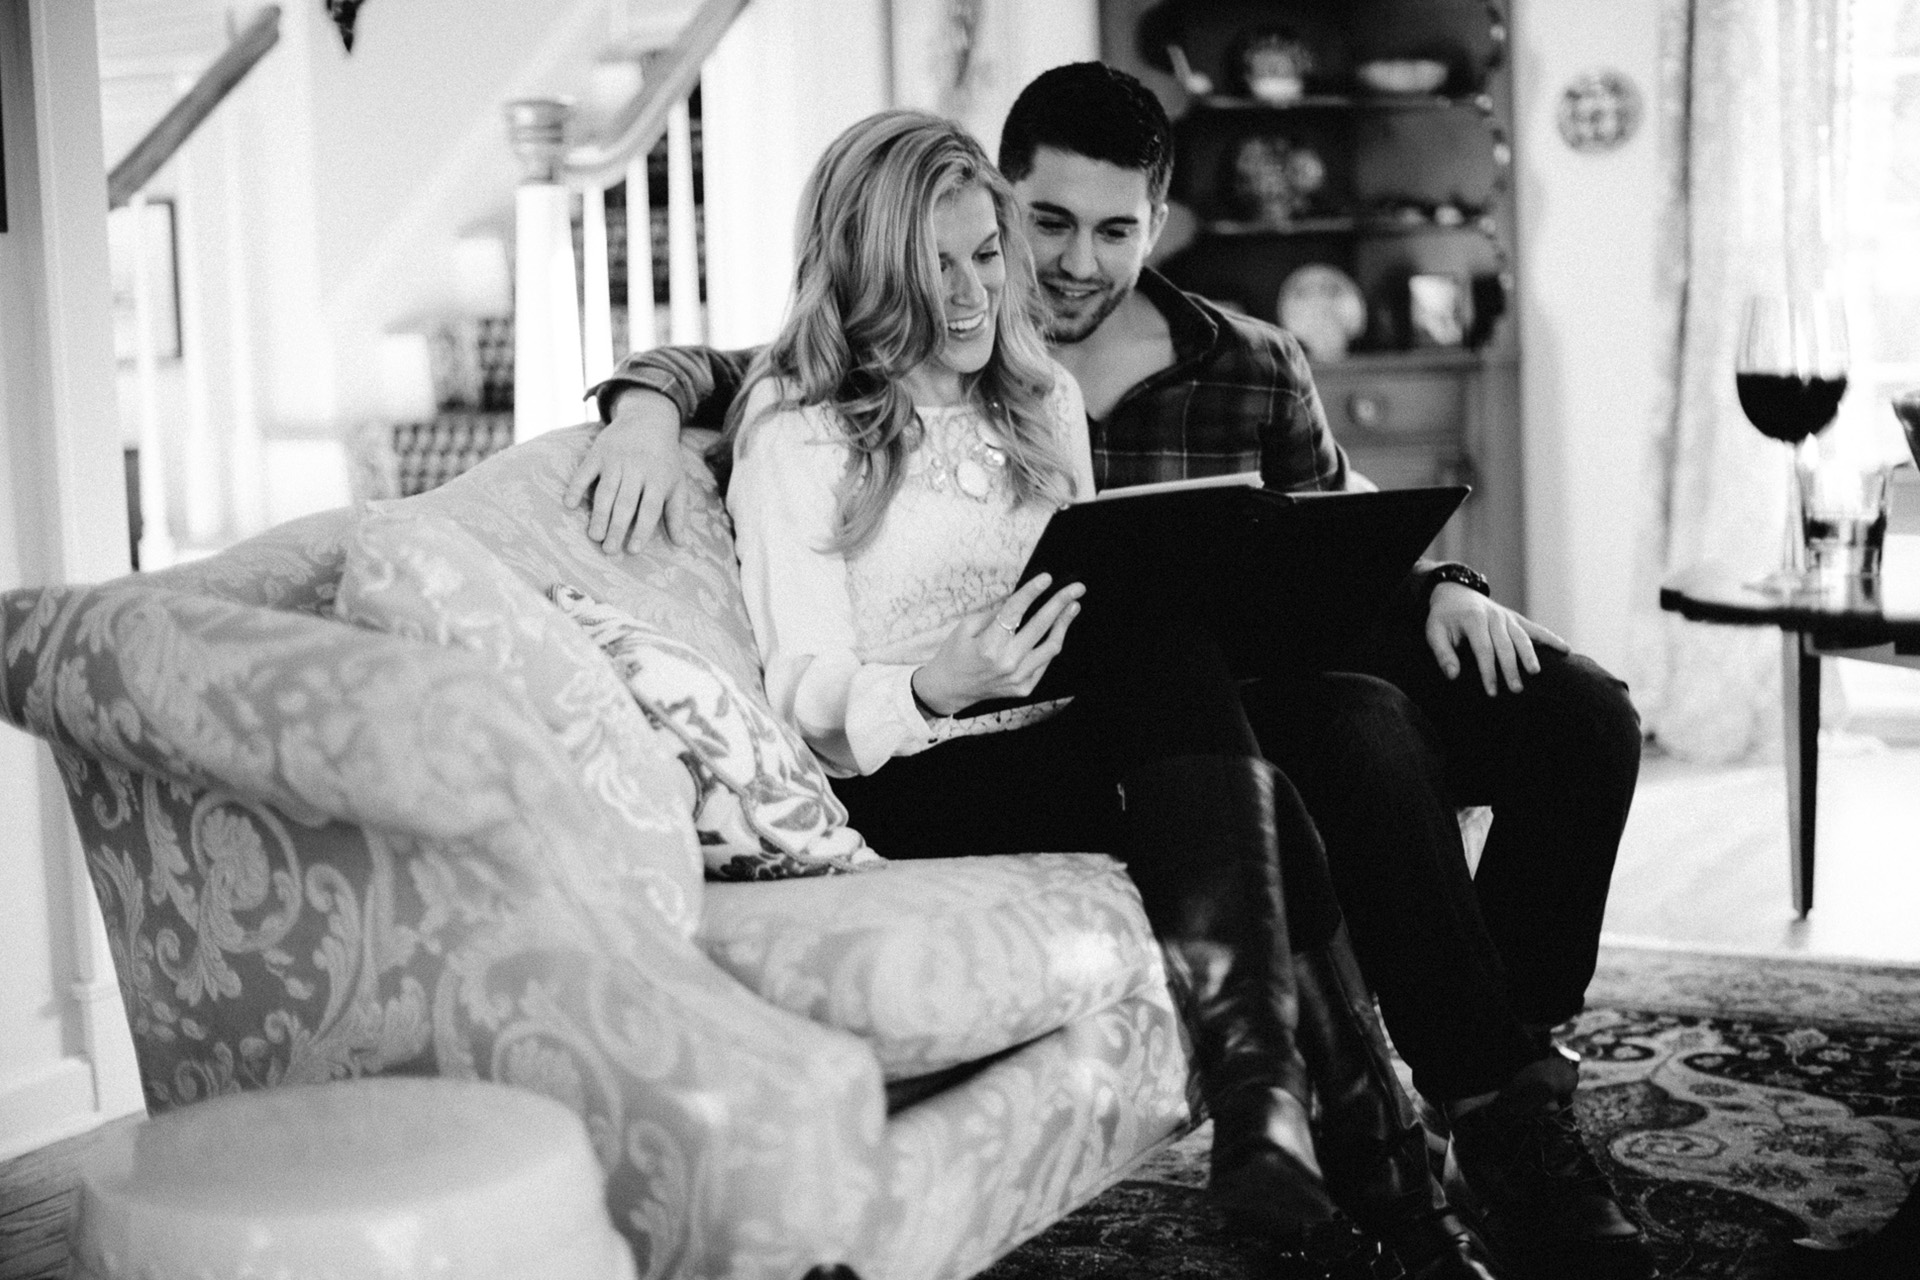 Winter Engagement Session in Bay Village - Too Much Awesomeness - Cleveland Wedding Photographer 04.jpg